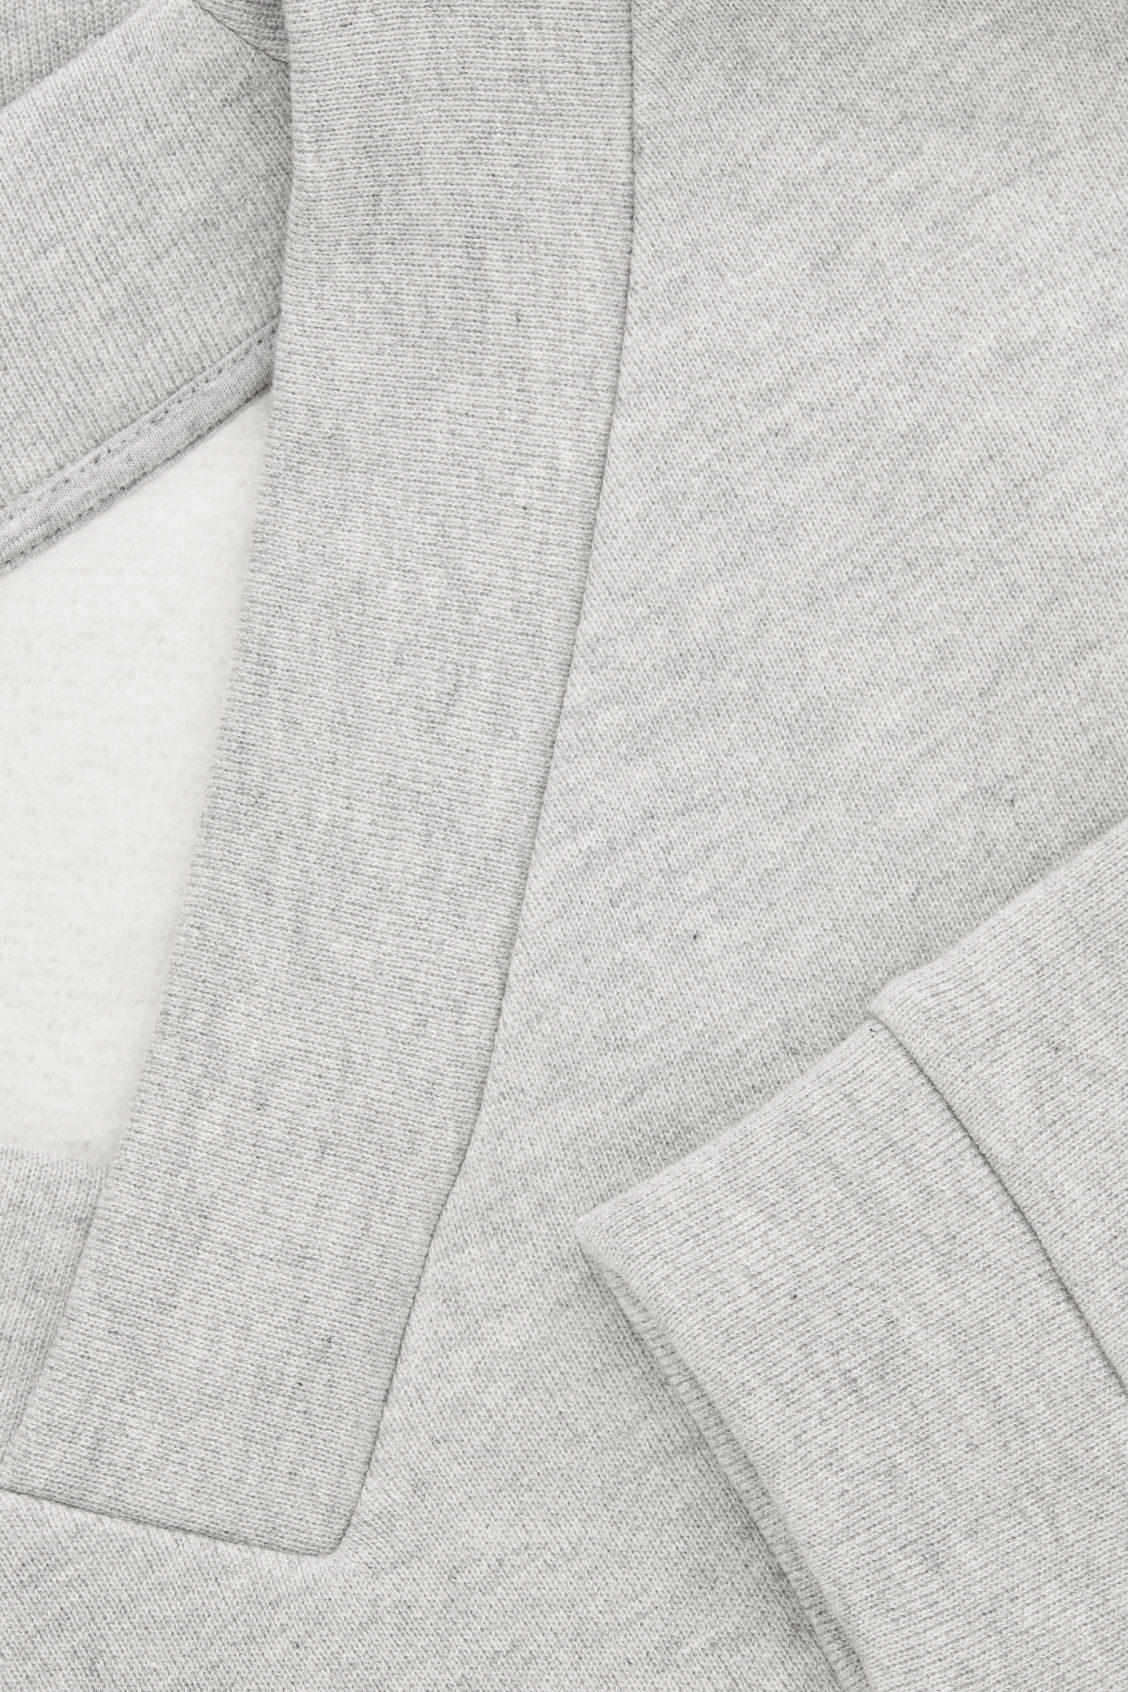 Side image of Cos v-neck jersey sweatshirt in grey